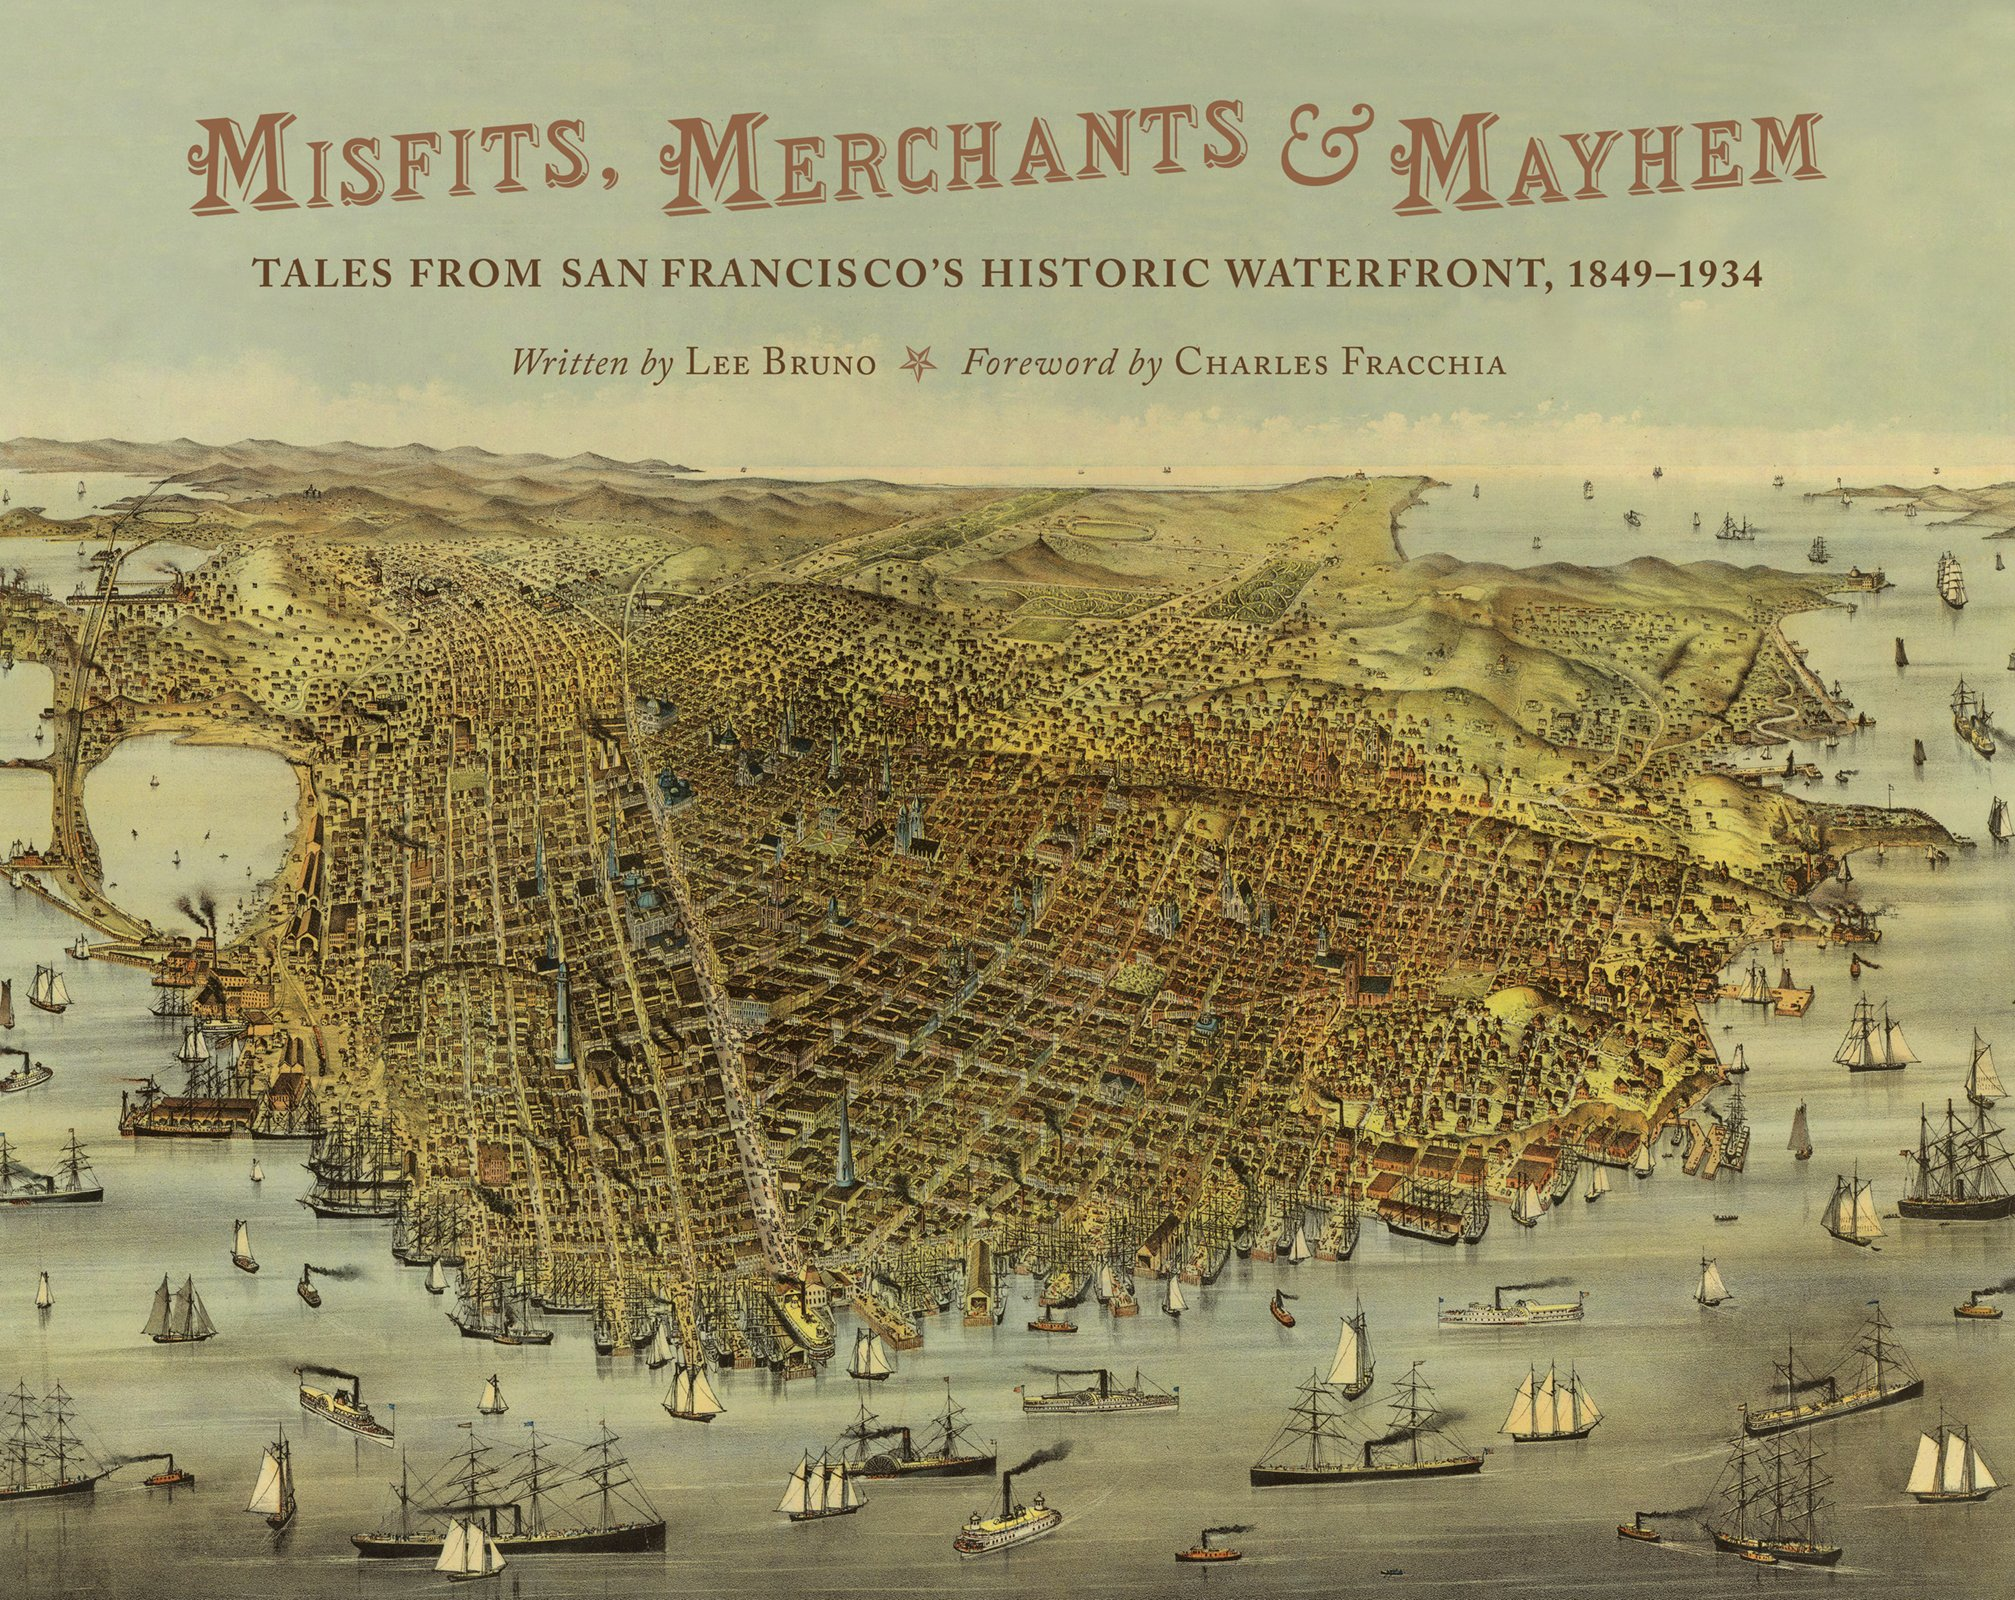 Misfits, Merchants, and Mayhem: Tales from San Francisco's Historic Waterfront, 1849-1934